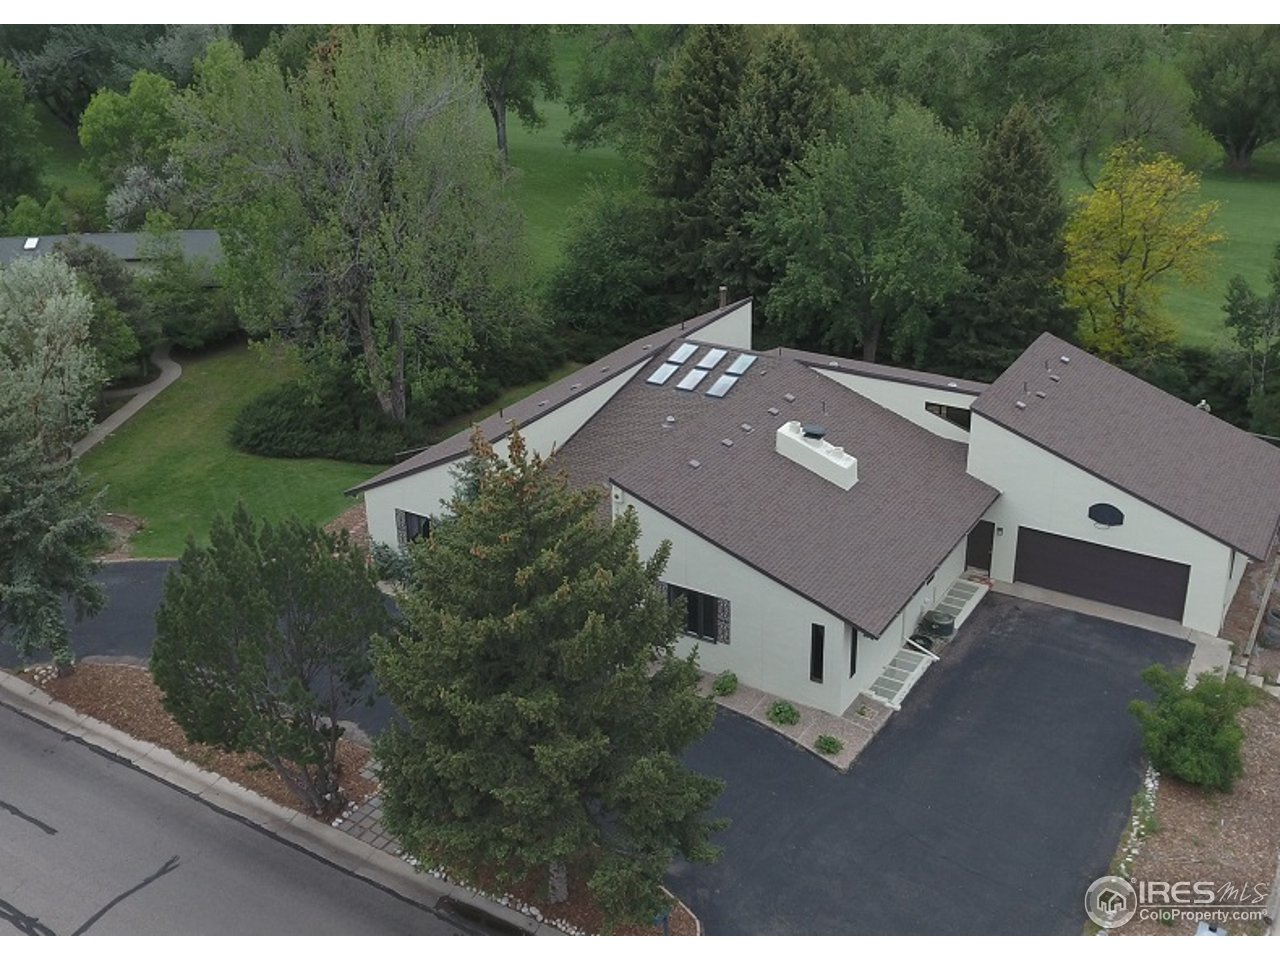 1201 48th Ave, Greeley, CO 80634